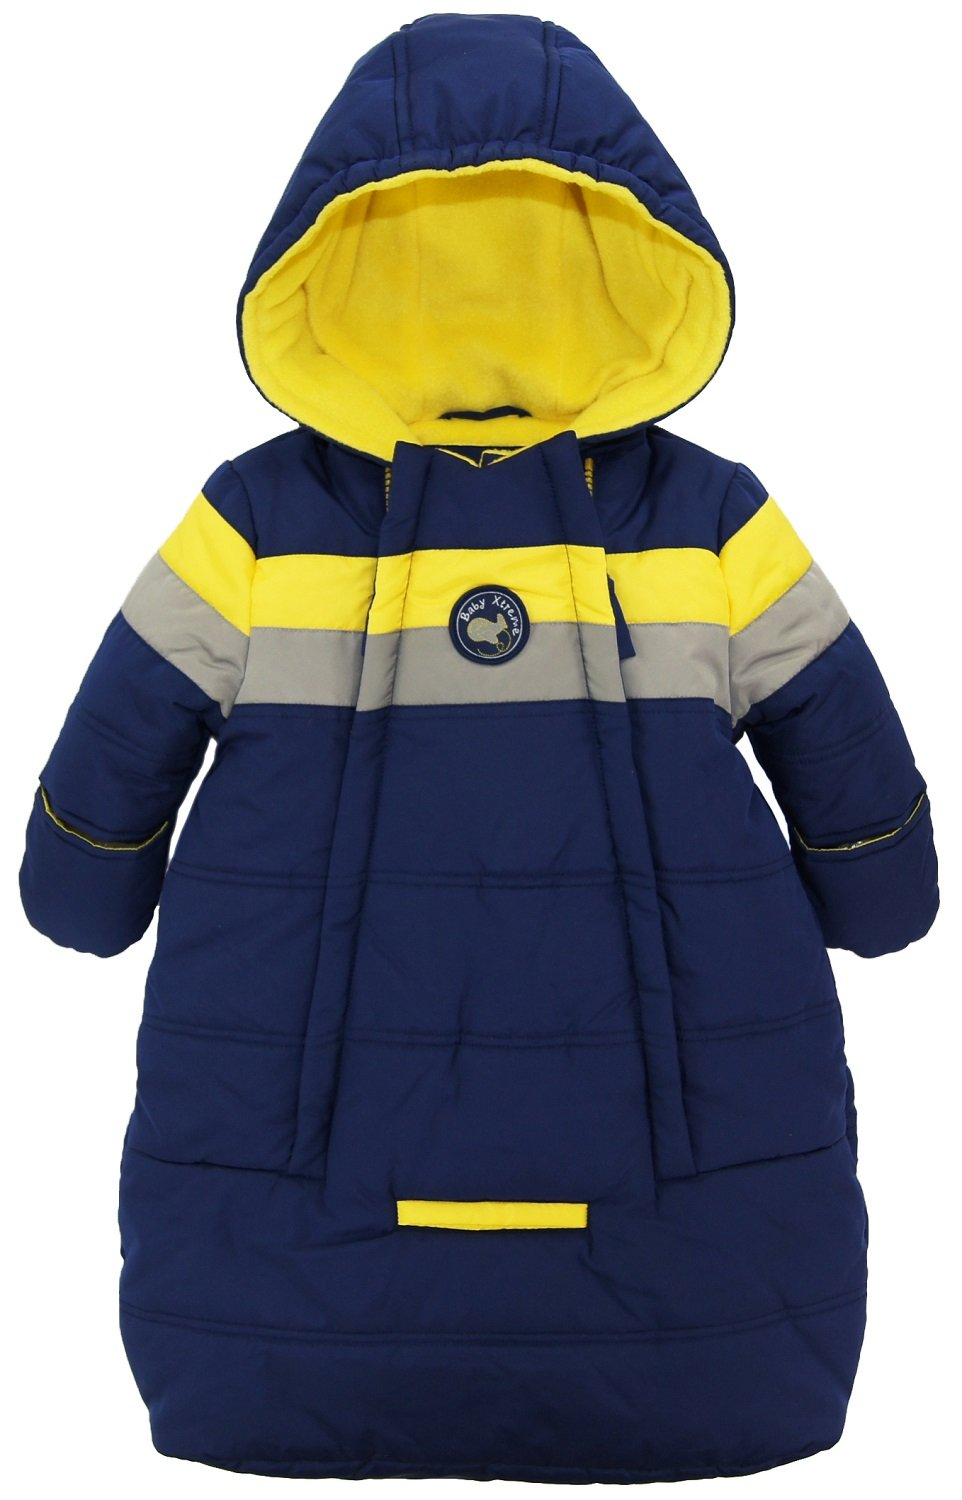 iXtreme Baby Boys Snowsuit Colorblock Stripes Puffer Carbag, Navy, 6-9 Months by iXtreme (Image #1)